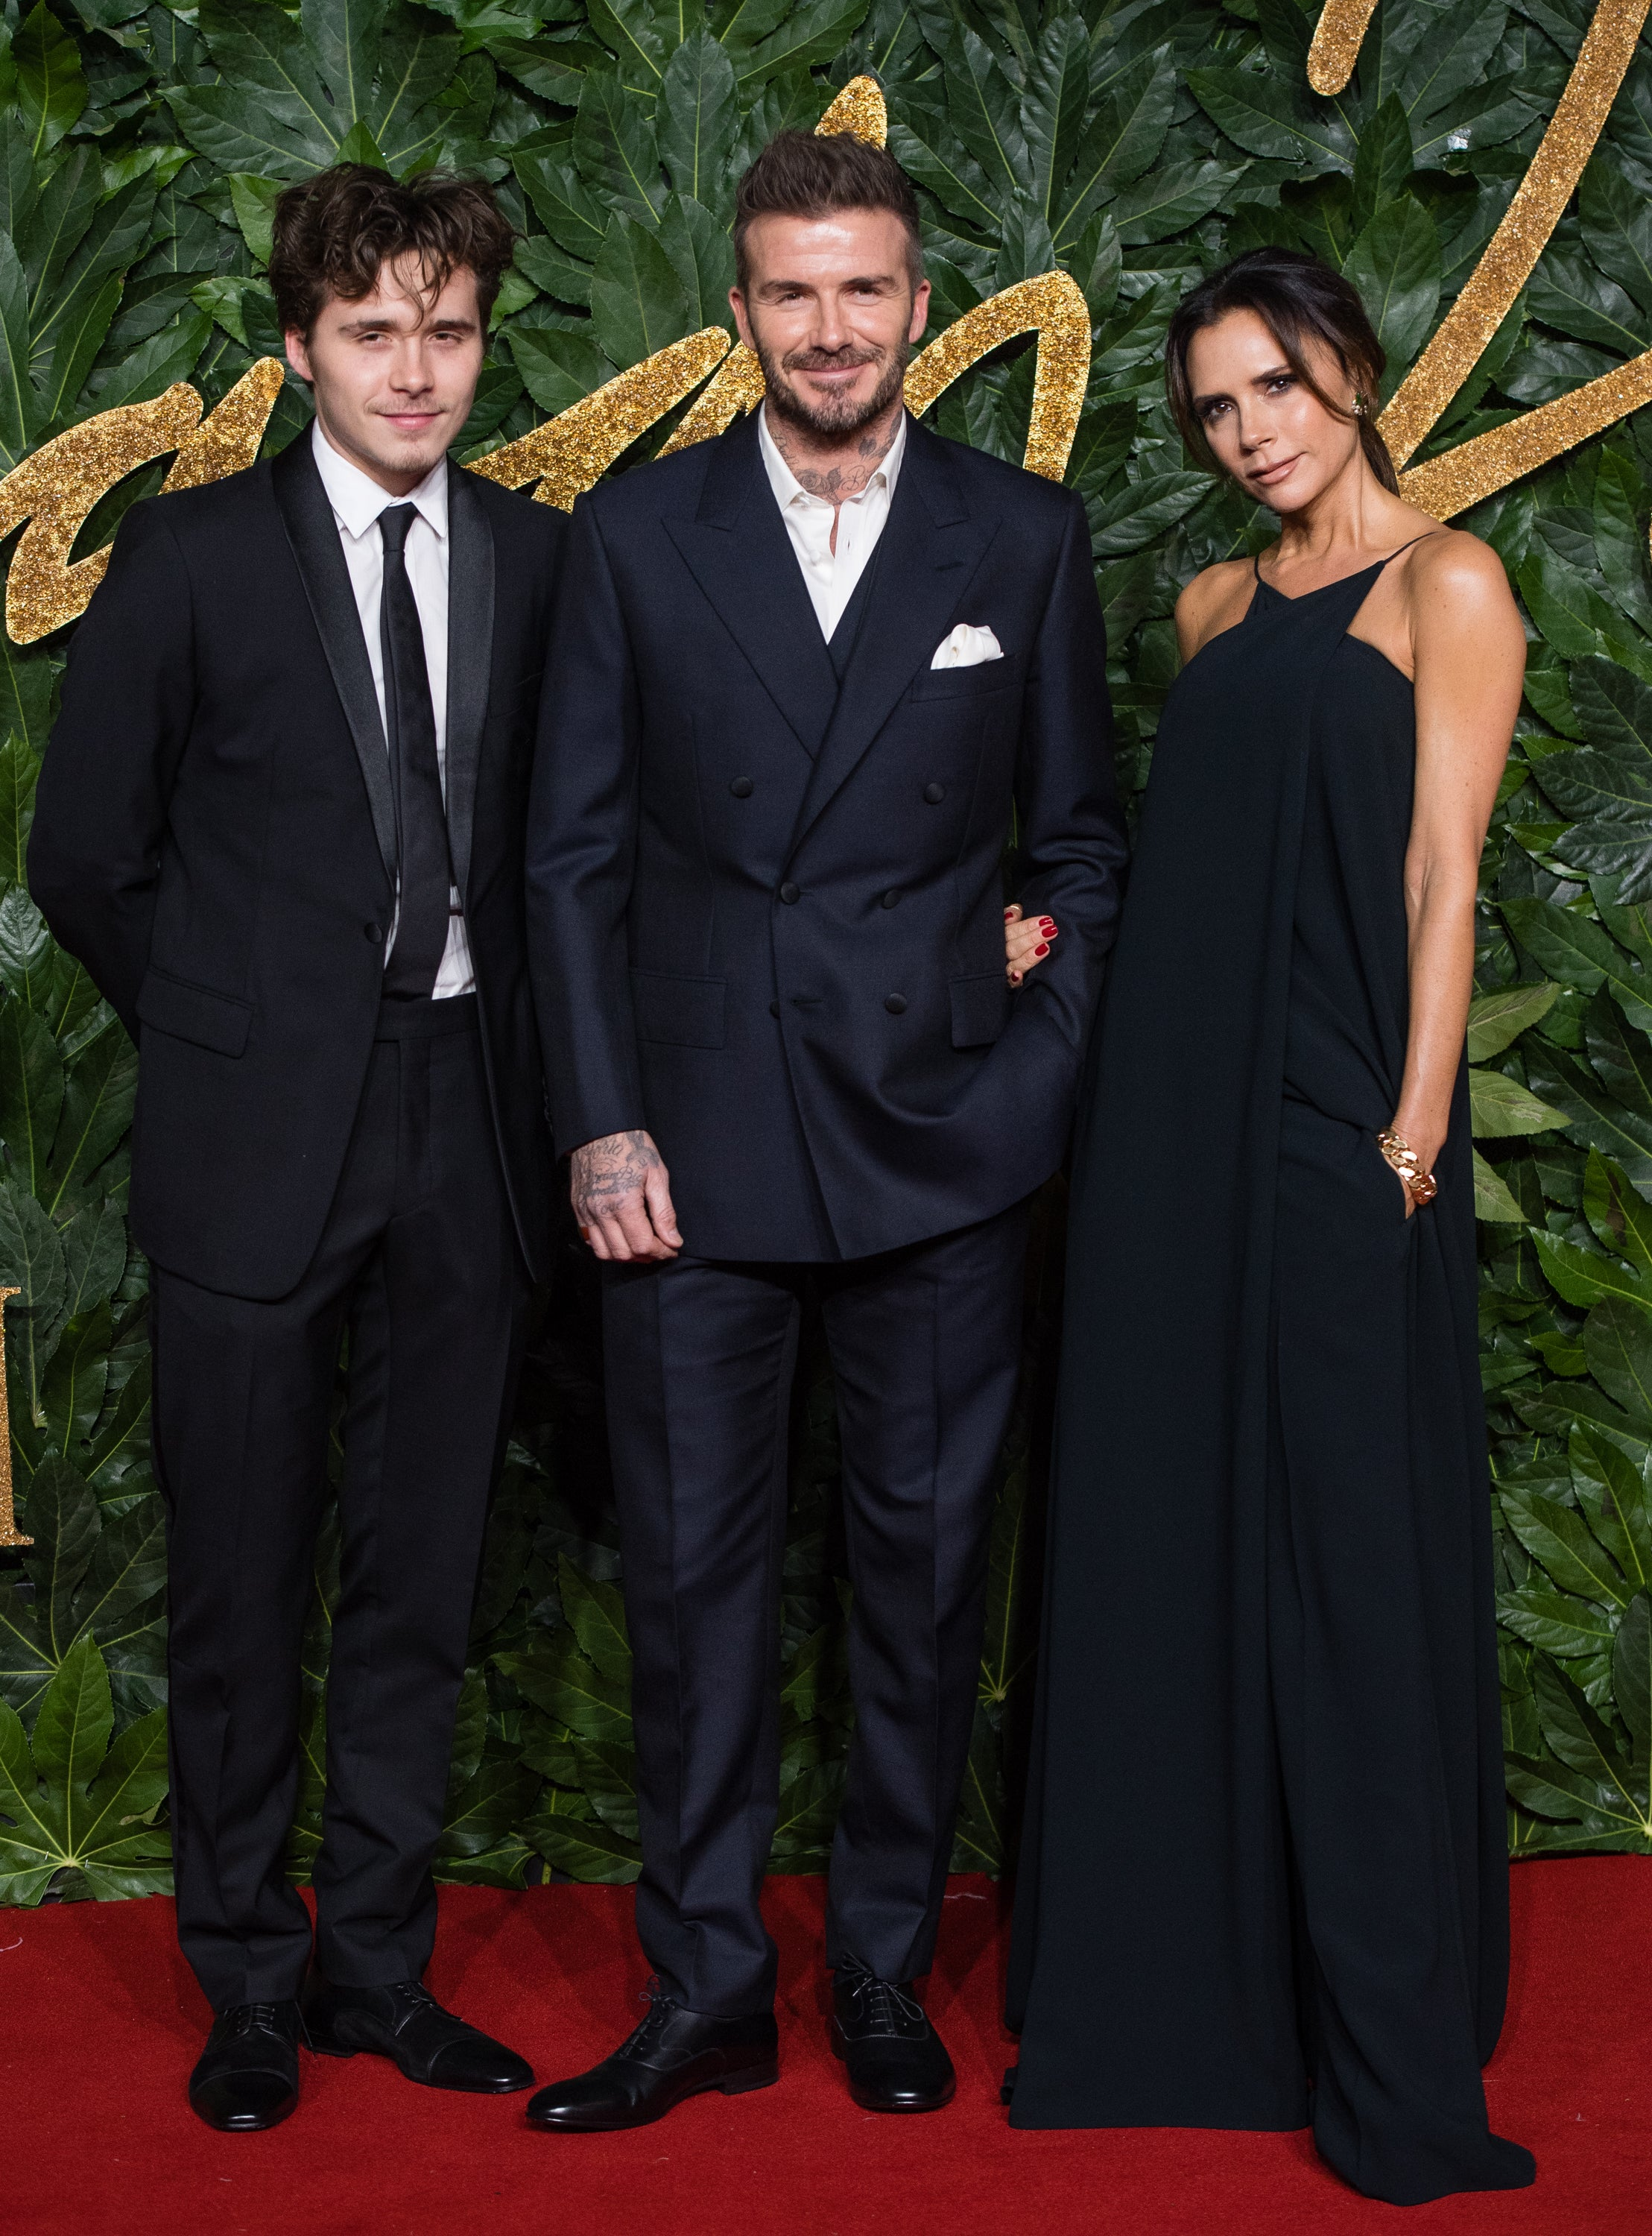 Victoria and David Beckham Bring Brooklyn Out For a Fashion Awards Family  Night  2e08285ac